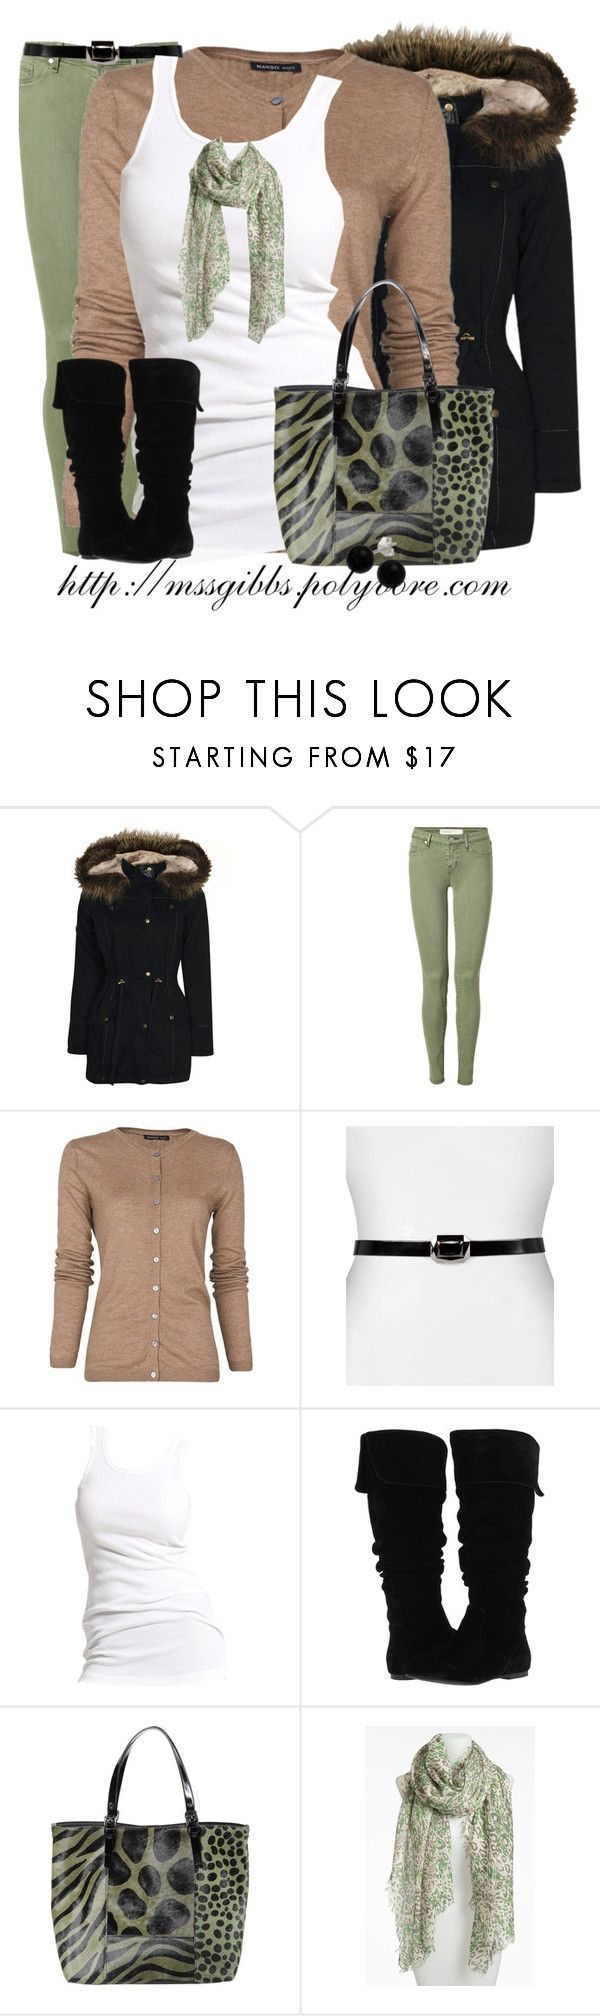 """""""Innue Bag"""" by mssgibbs ❤ liked on Polyvore featuring Boohoo, Marc by Marc Jacobs, MANGO, Ted Baker, Soaked in Luxury, Gabriella Rocha, Innue, Nordstrom and Bridge Jewelry"""